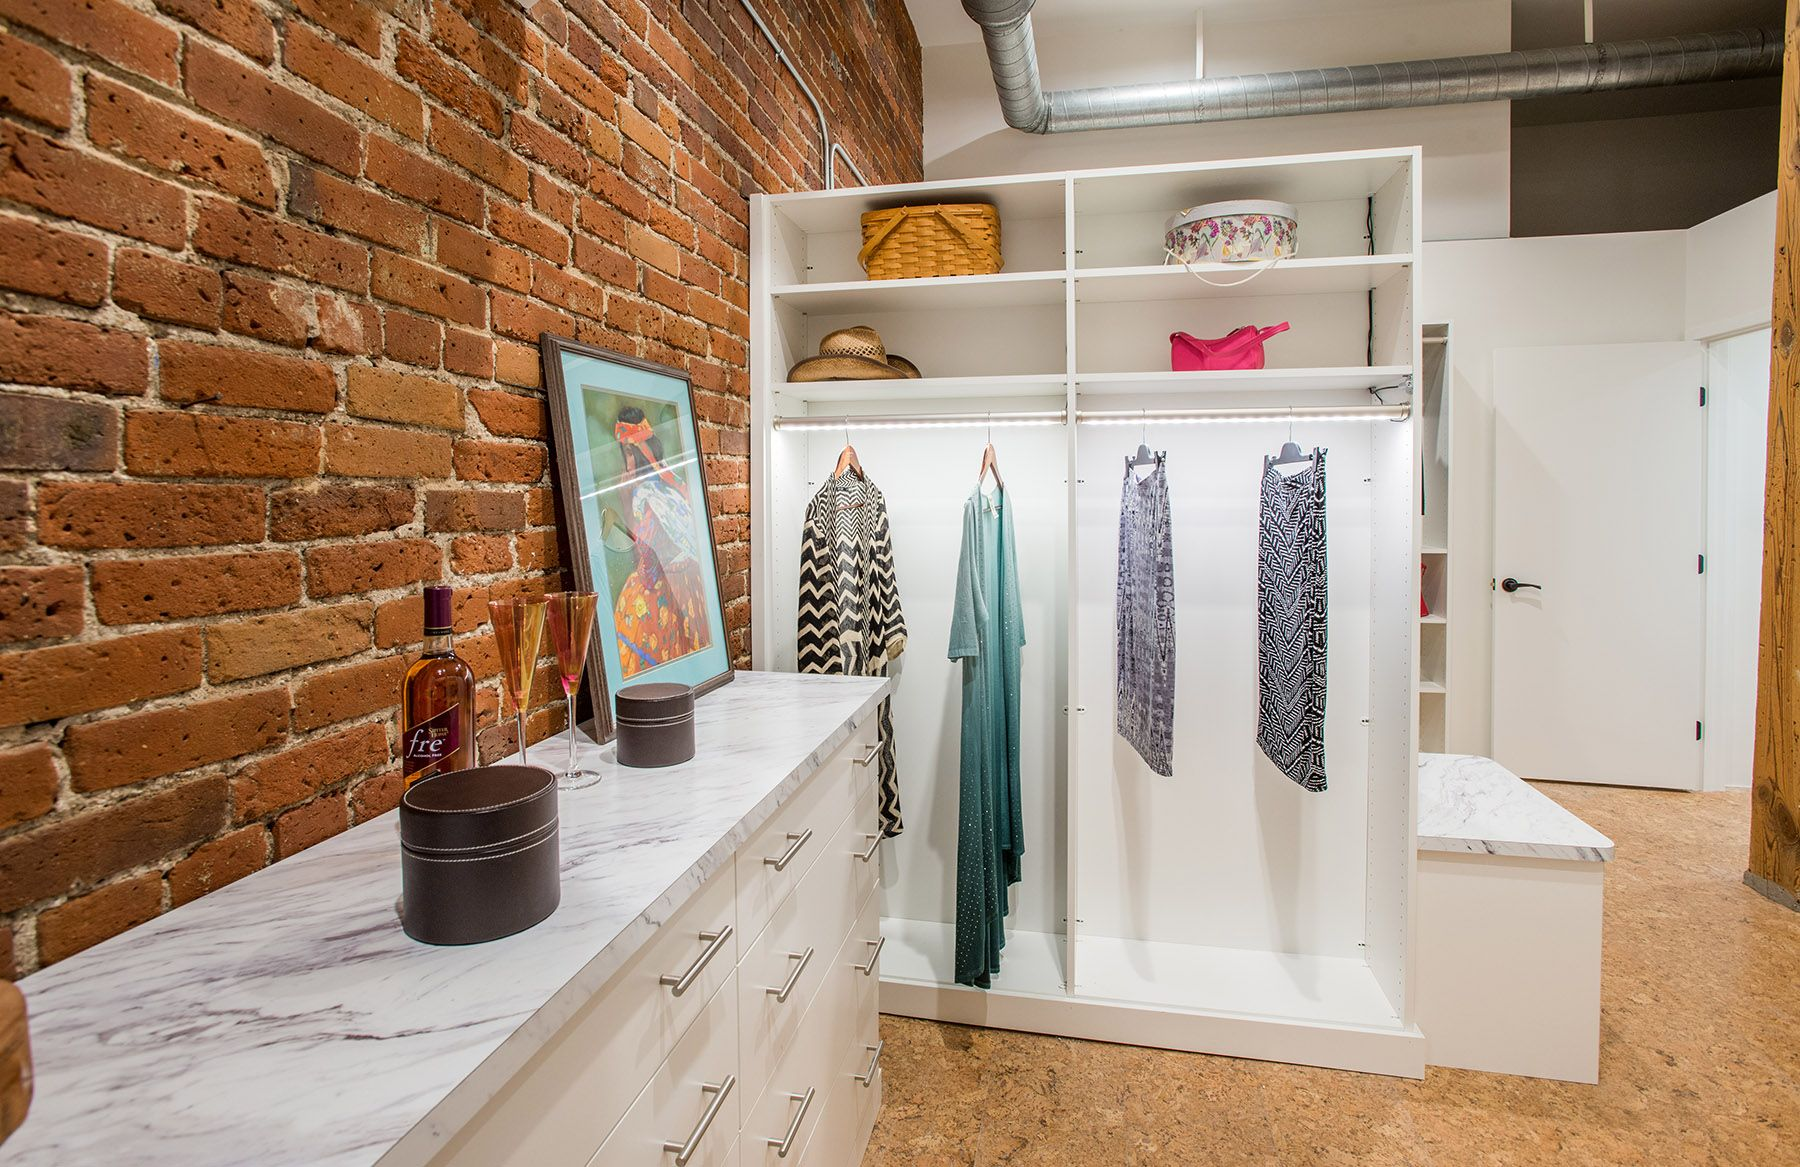 Meet With A Designer Who Will Guide You Through Personalizing Your Custom  Closet With Materials And Accessories That Suit Your Style And Project  Budget.